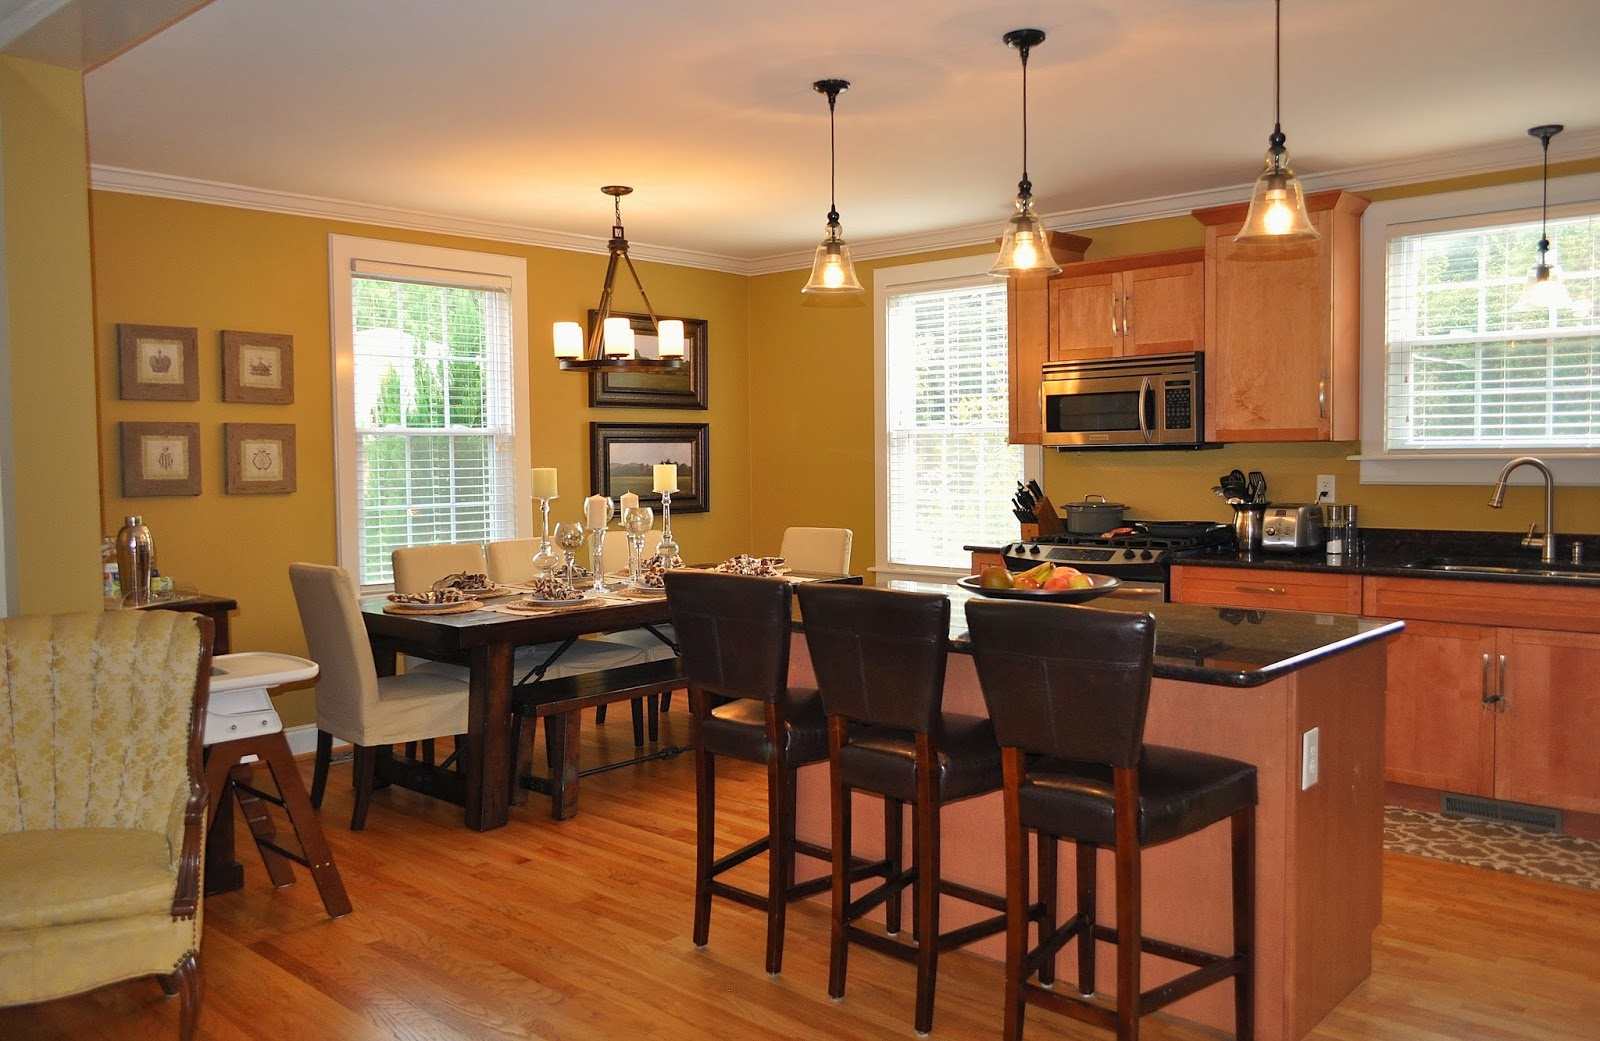 Kitchen Lights Over Table Hello Happiness A Nashville Life Style Blog Room By Room